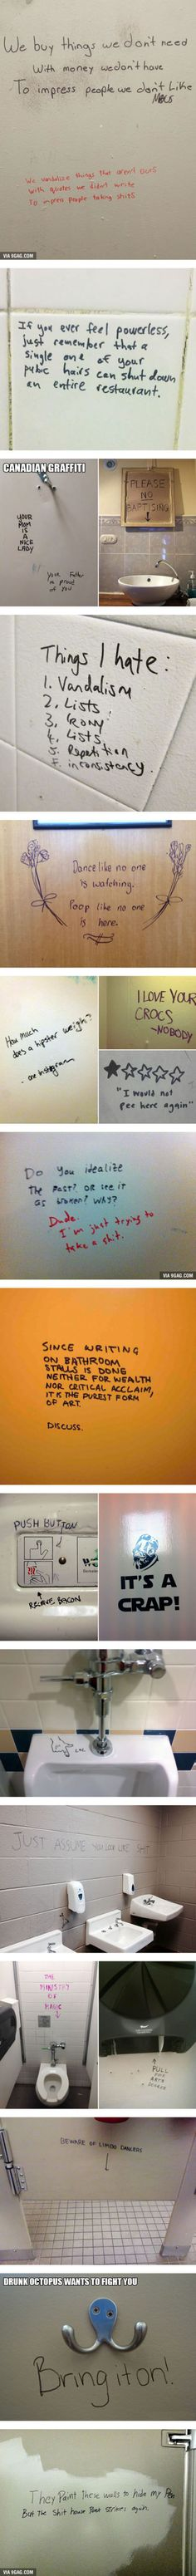 Brilliant Toilet Graffiti